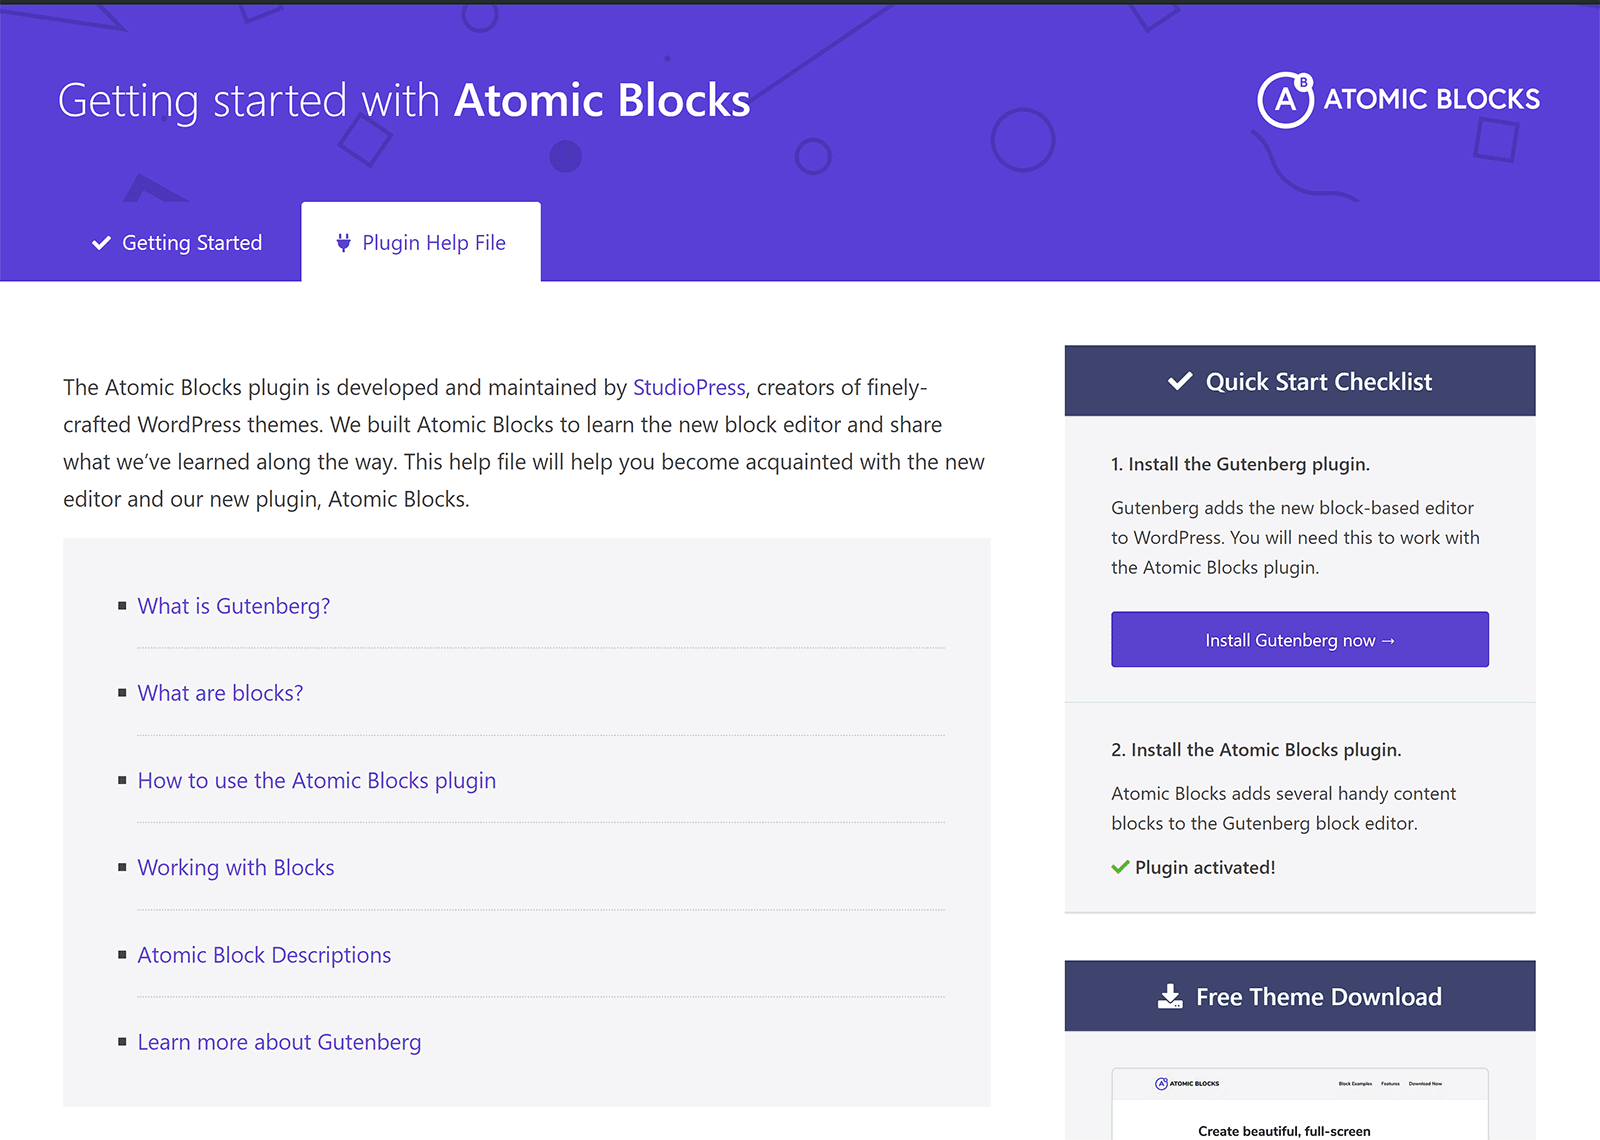 Getting Started with Atomic Blocks